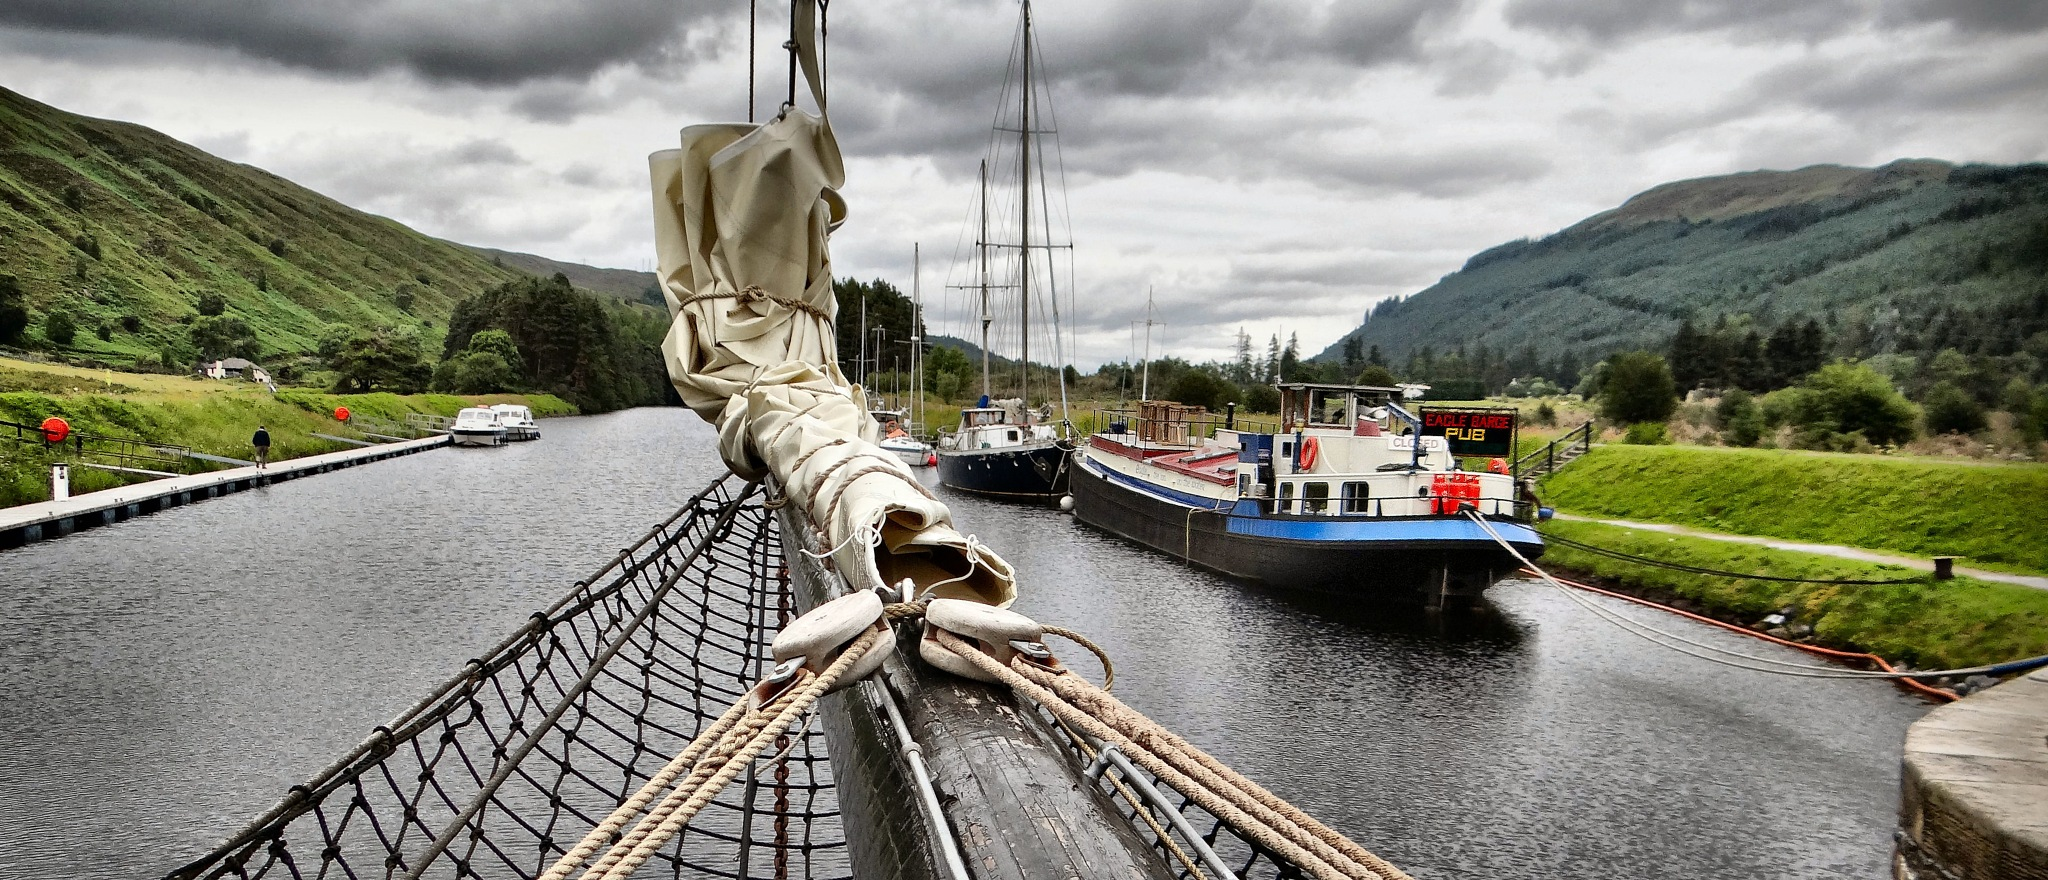 13 BIS - photos in Caledonia in search of the Loch Ness Monster by Mariano Arizzi Novelli